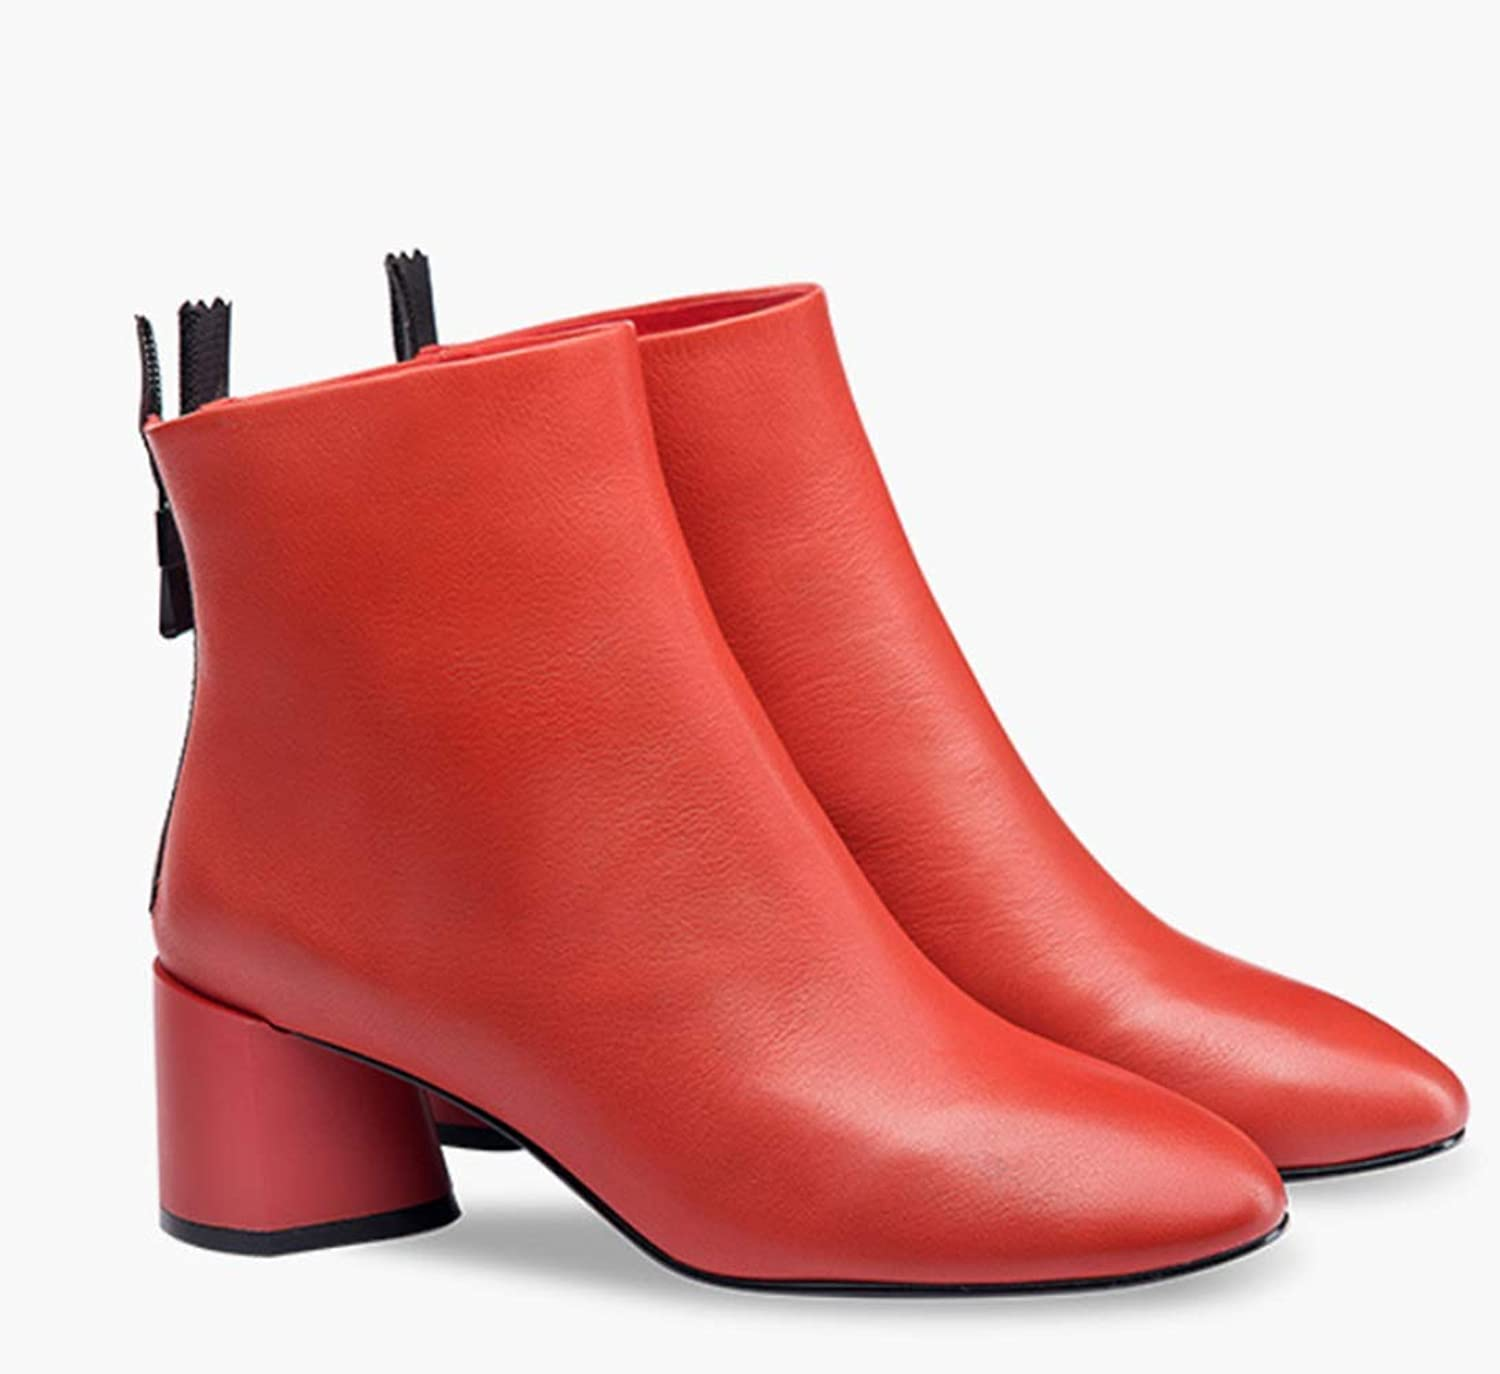 Shiney Women's Genuine Leather Booties Female 2018 New Round Head High-Heeled Single Boots Chunky Heel Short Tube Fashion shoes